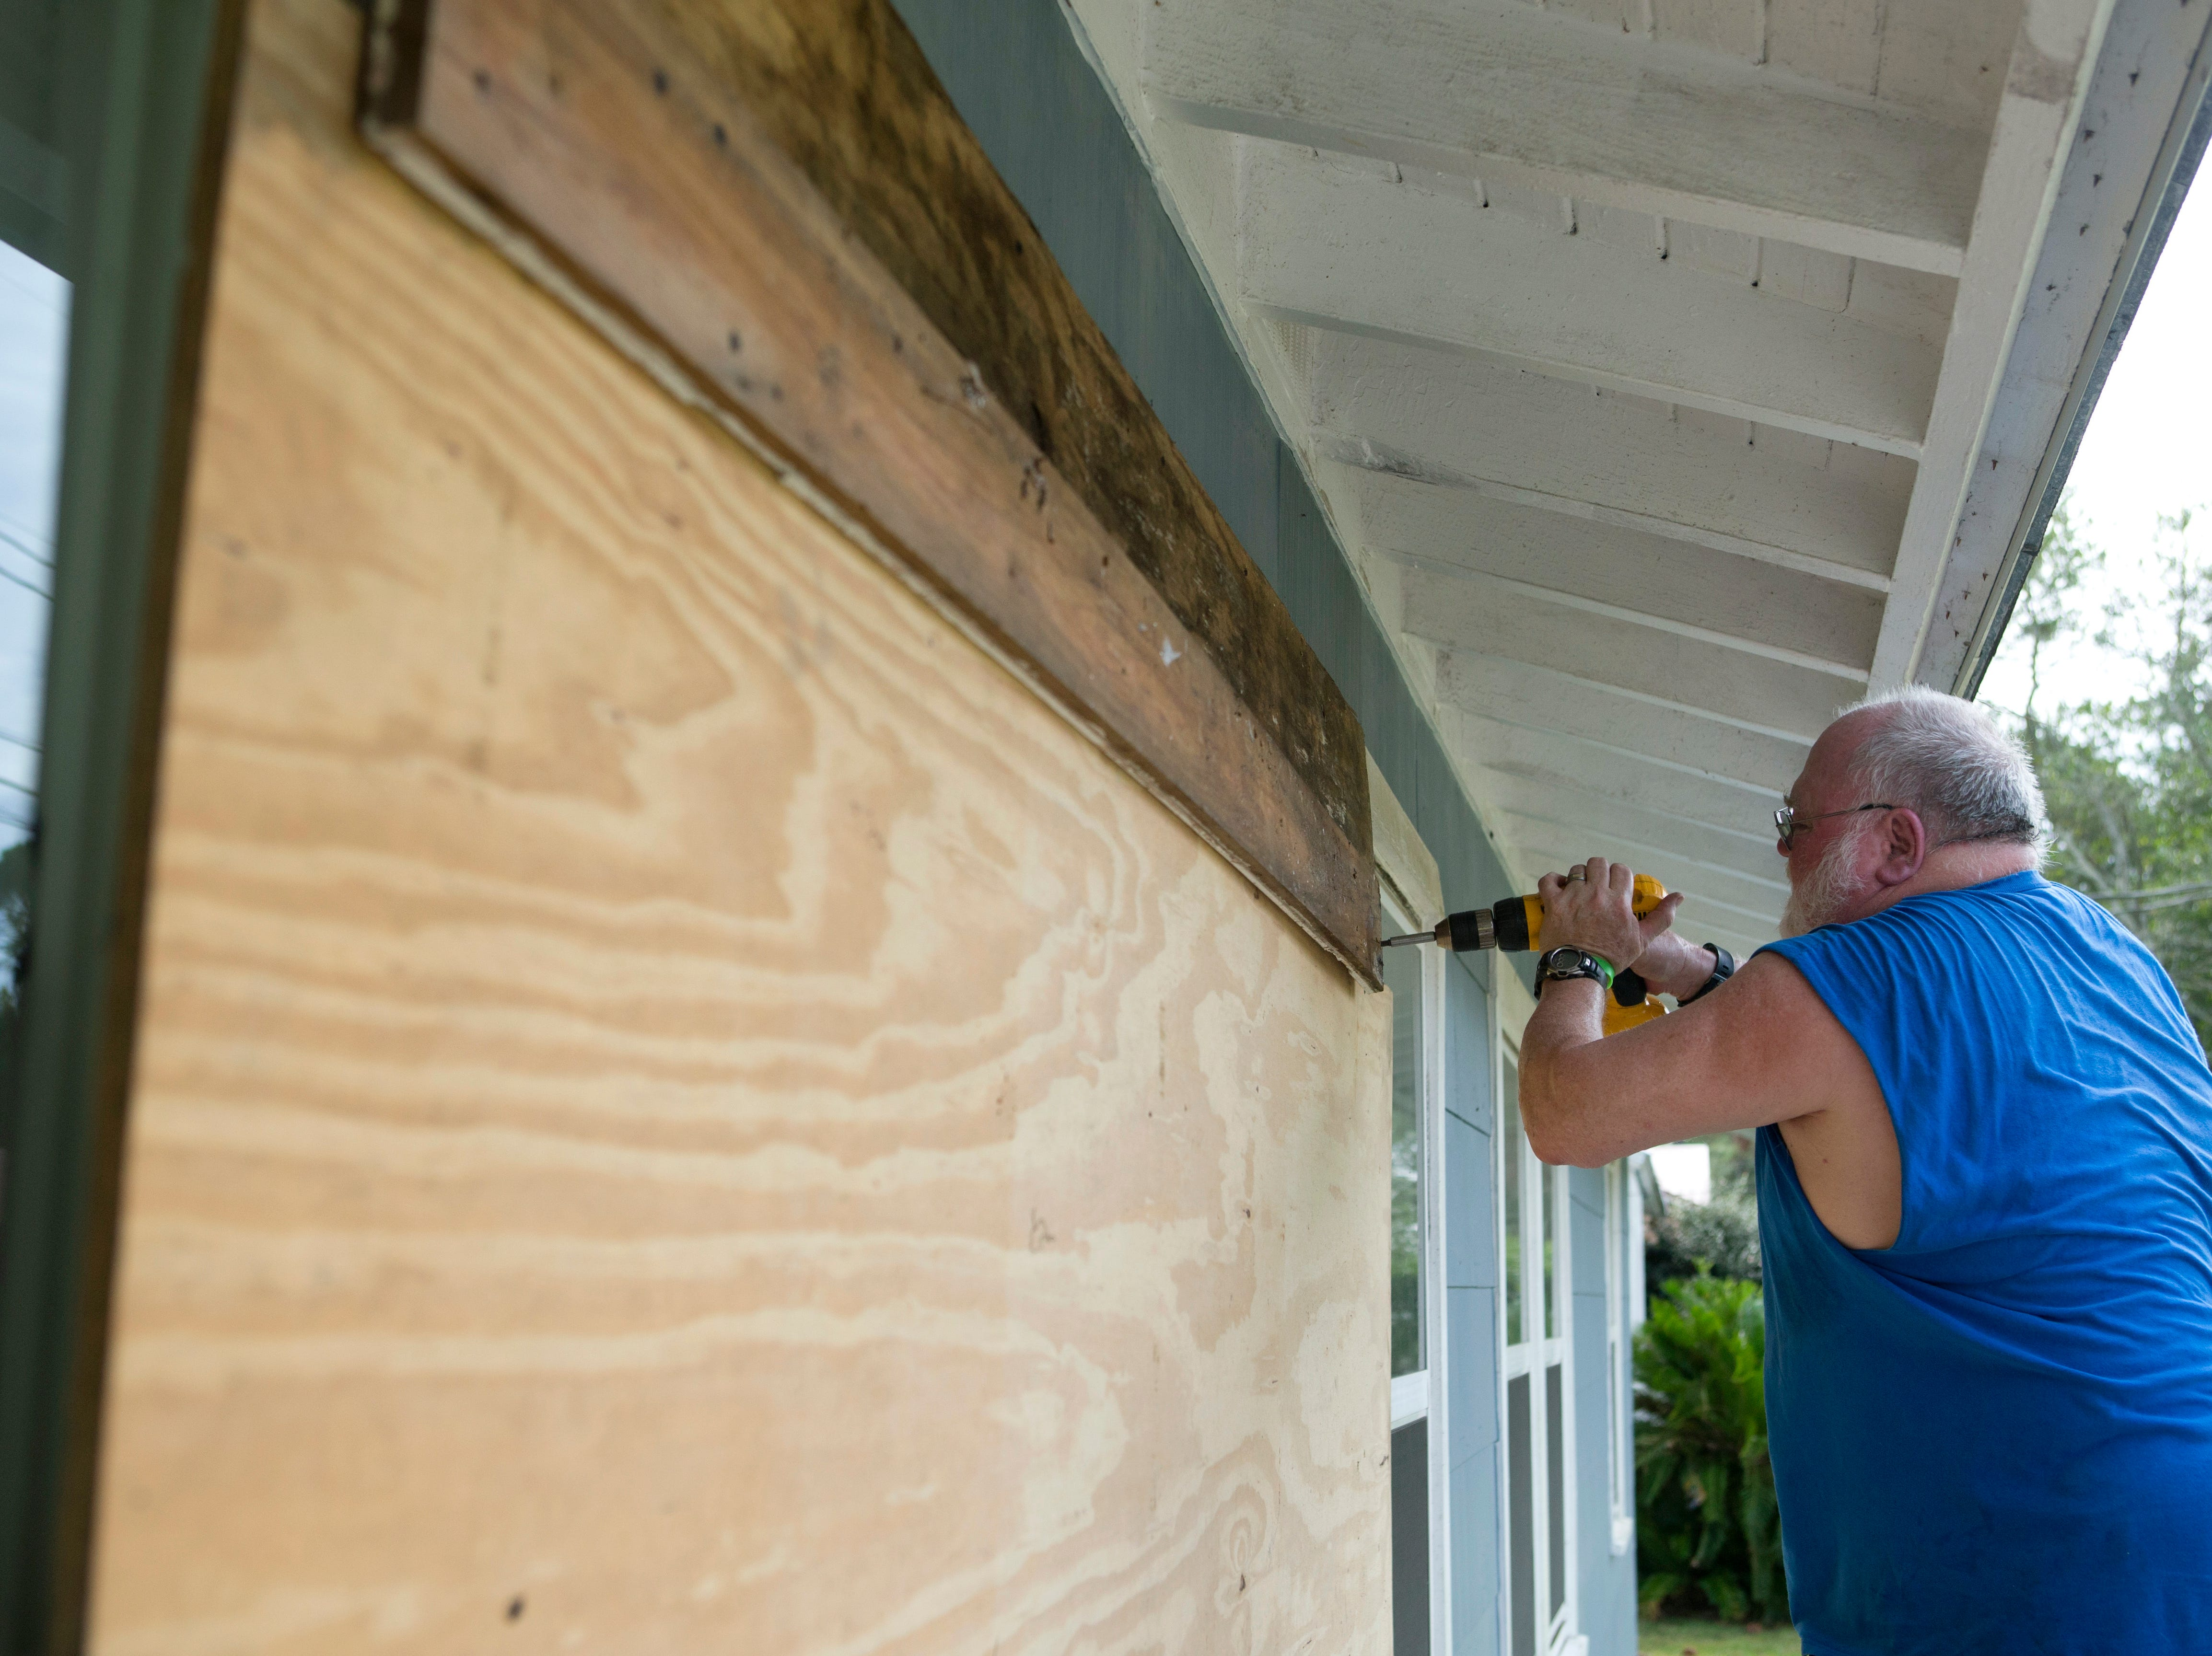 David Hayes boards up a window at this home in Panama City, Fla., as Hurricane Michael approaches on Tuesday, Oct. 9, 2018.